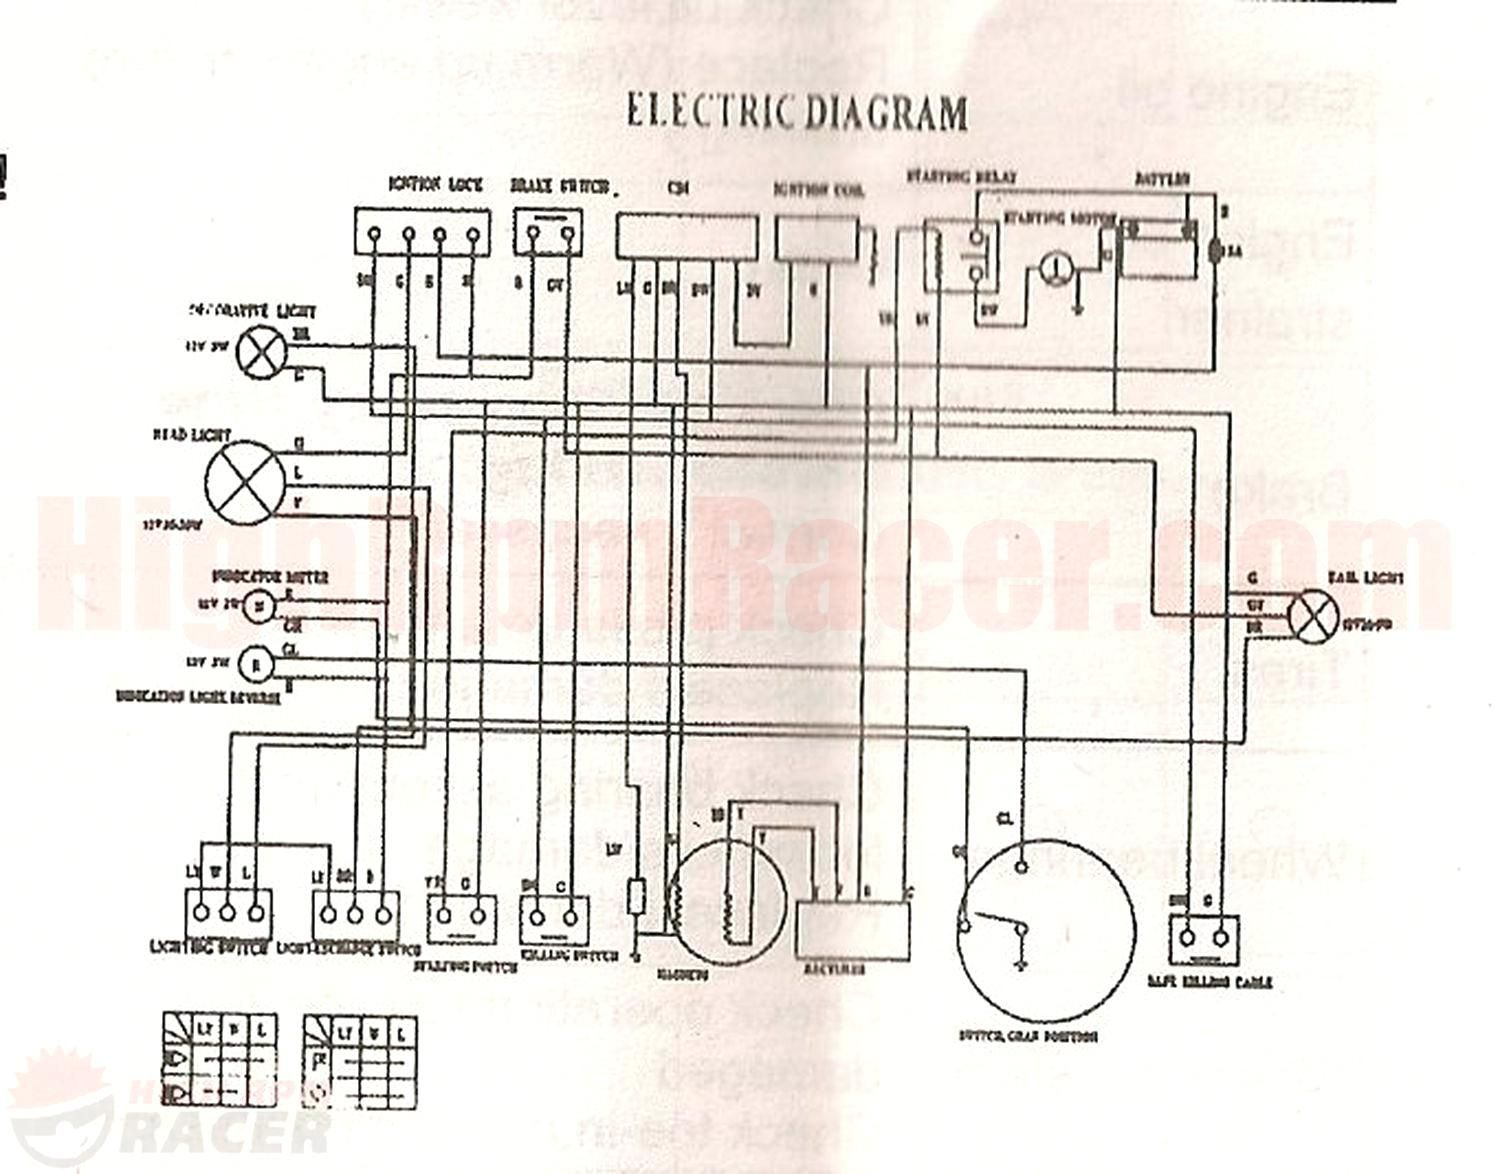 Loncin 110Cc Wiring Diagram from i.pinimg.com